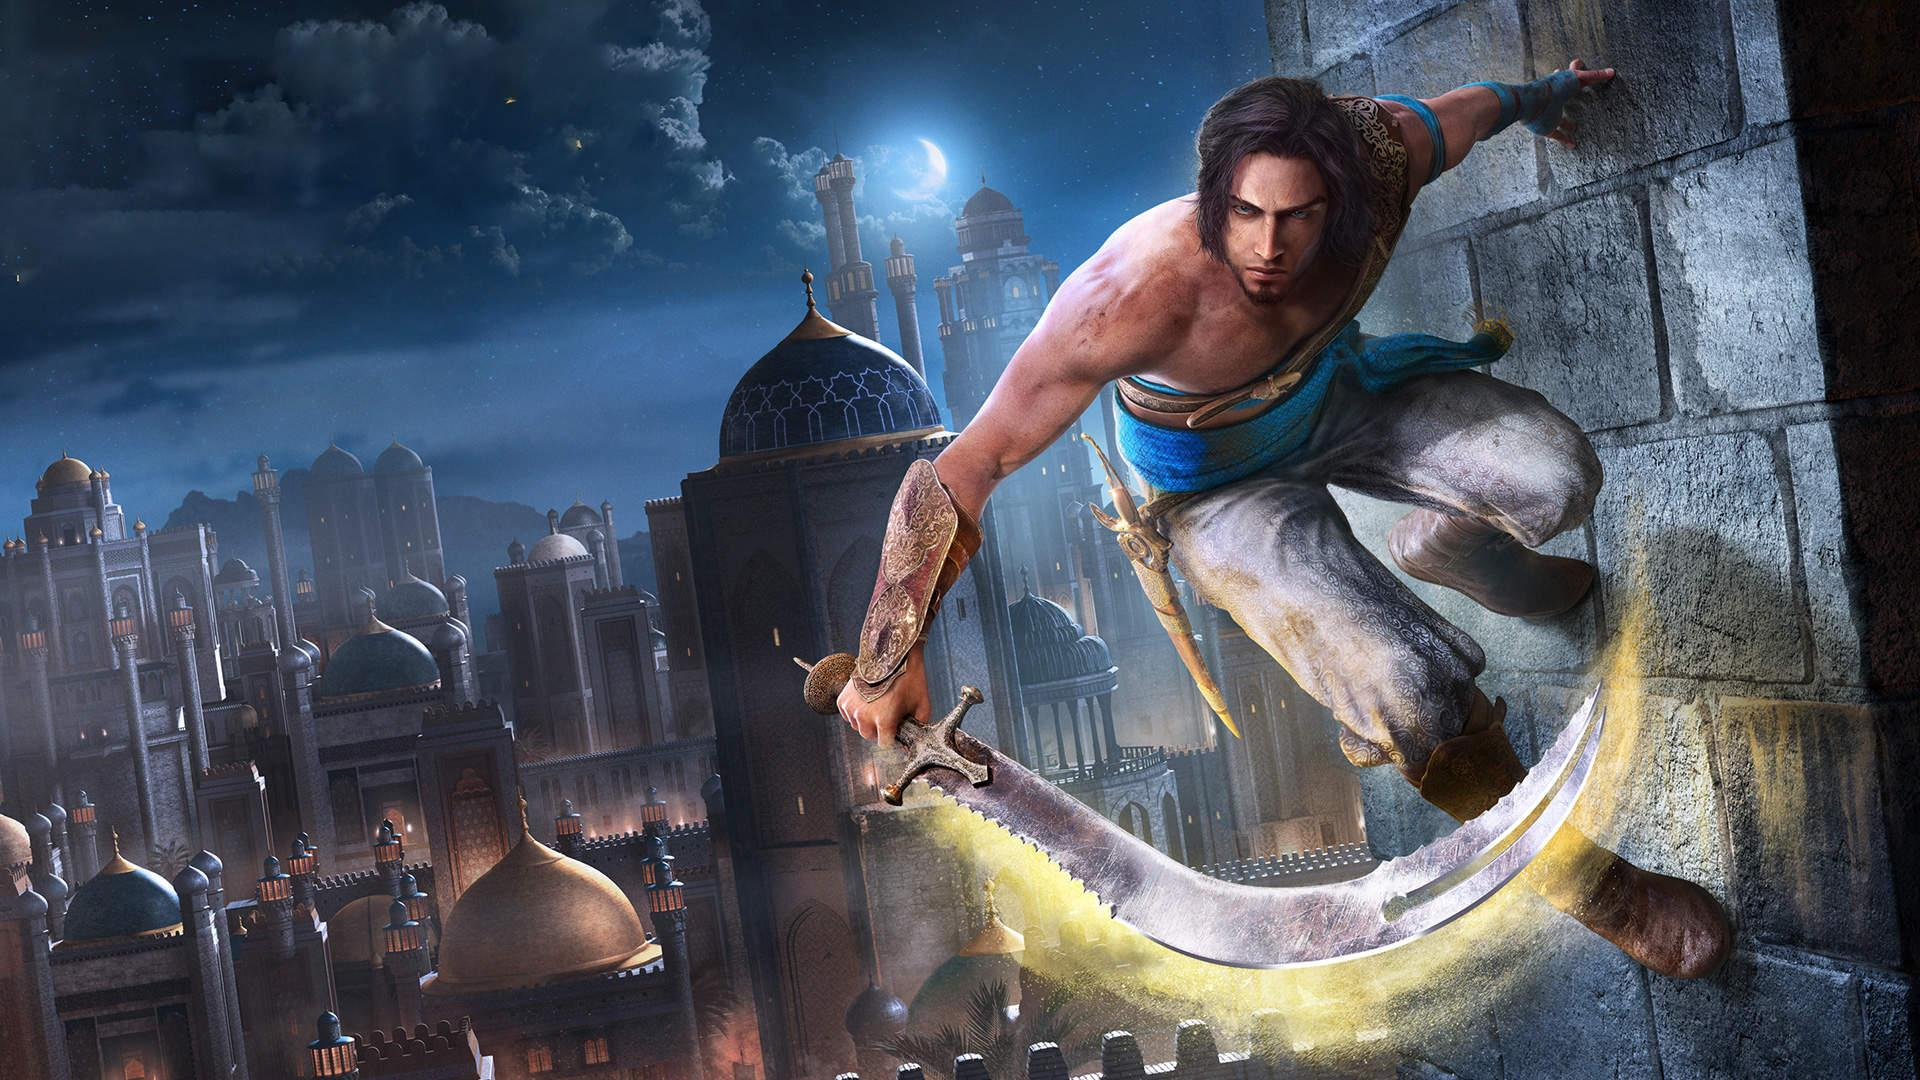 Prince of Persia Sands of Time: Remake for PS4